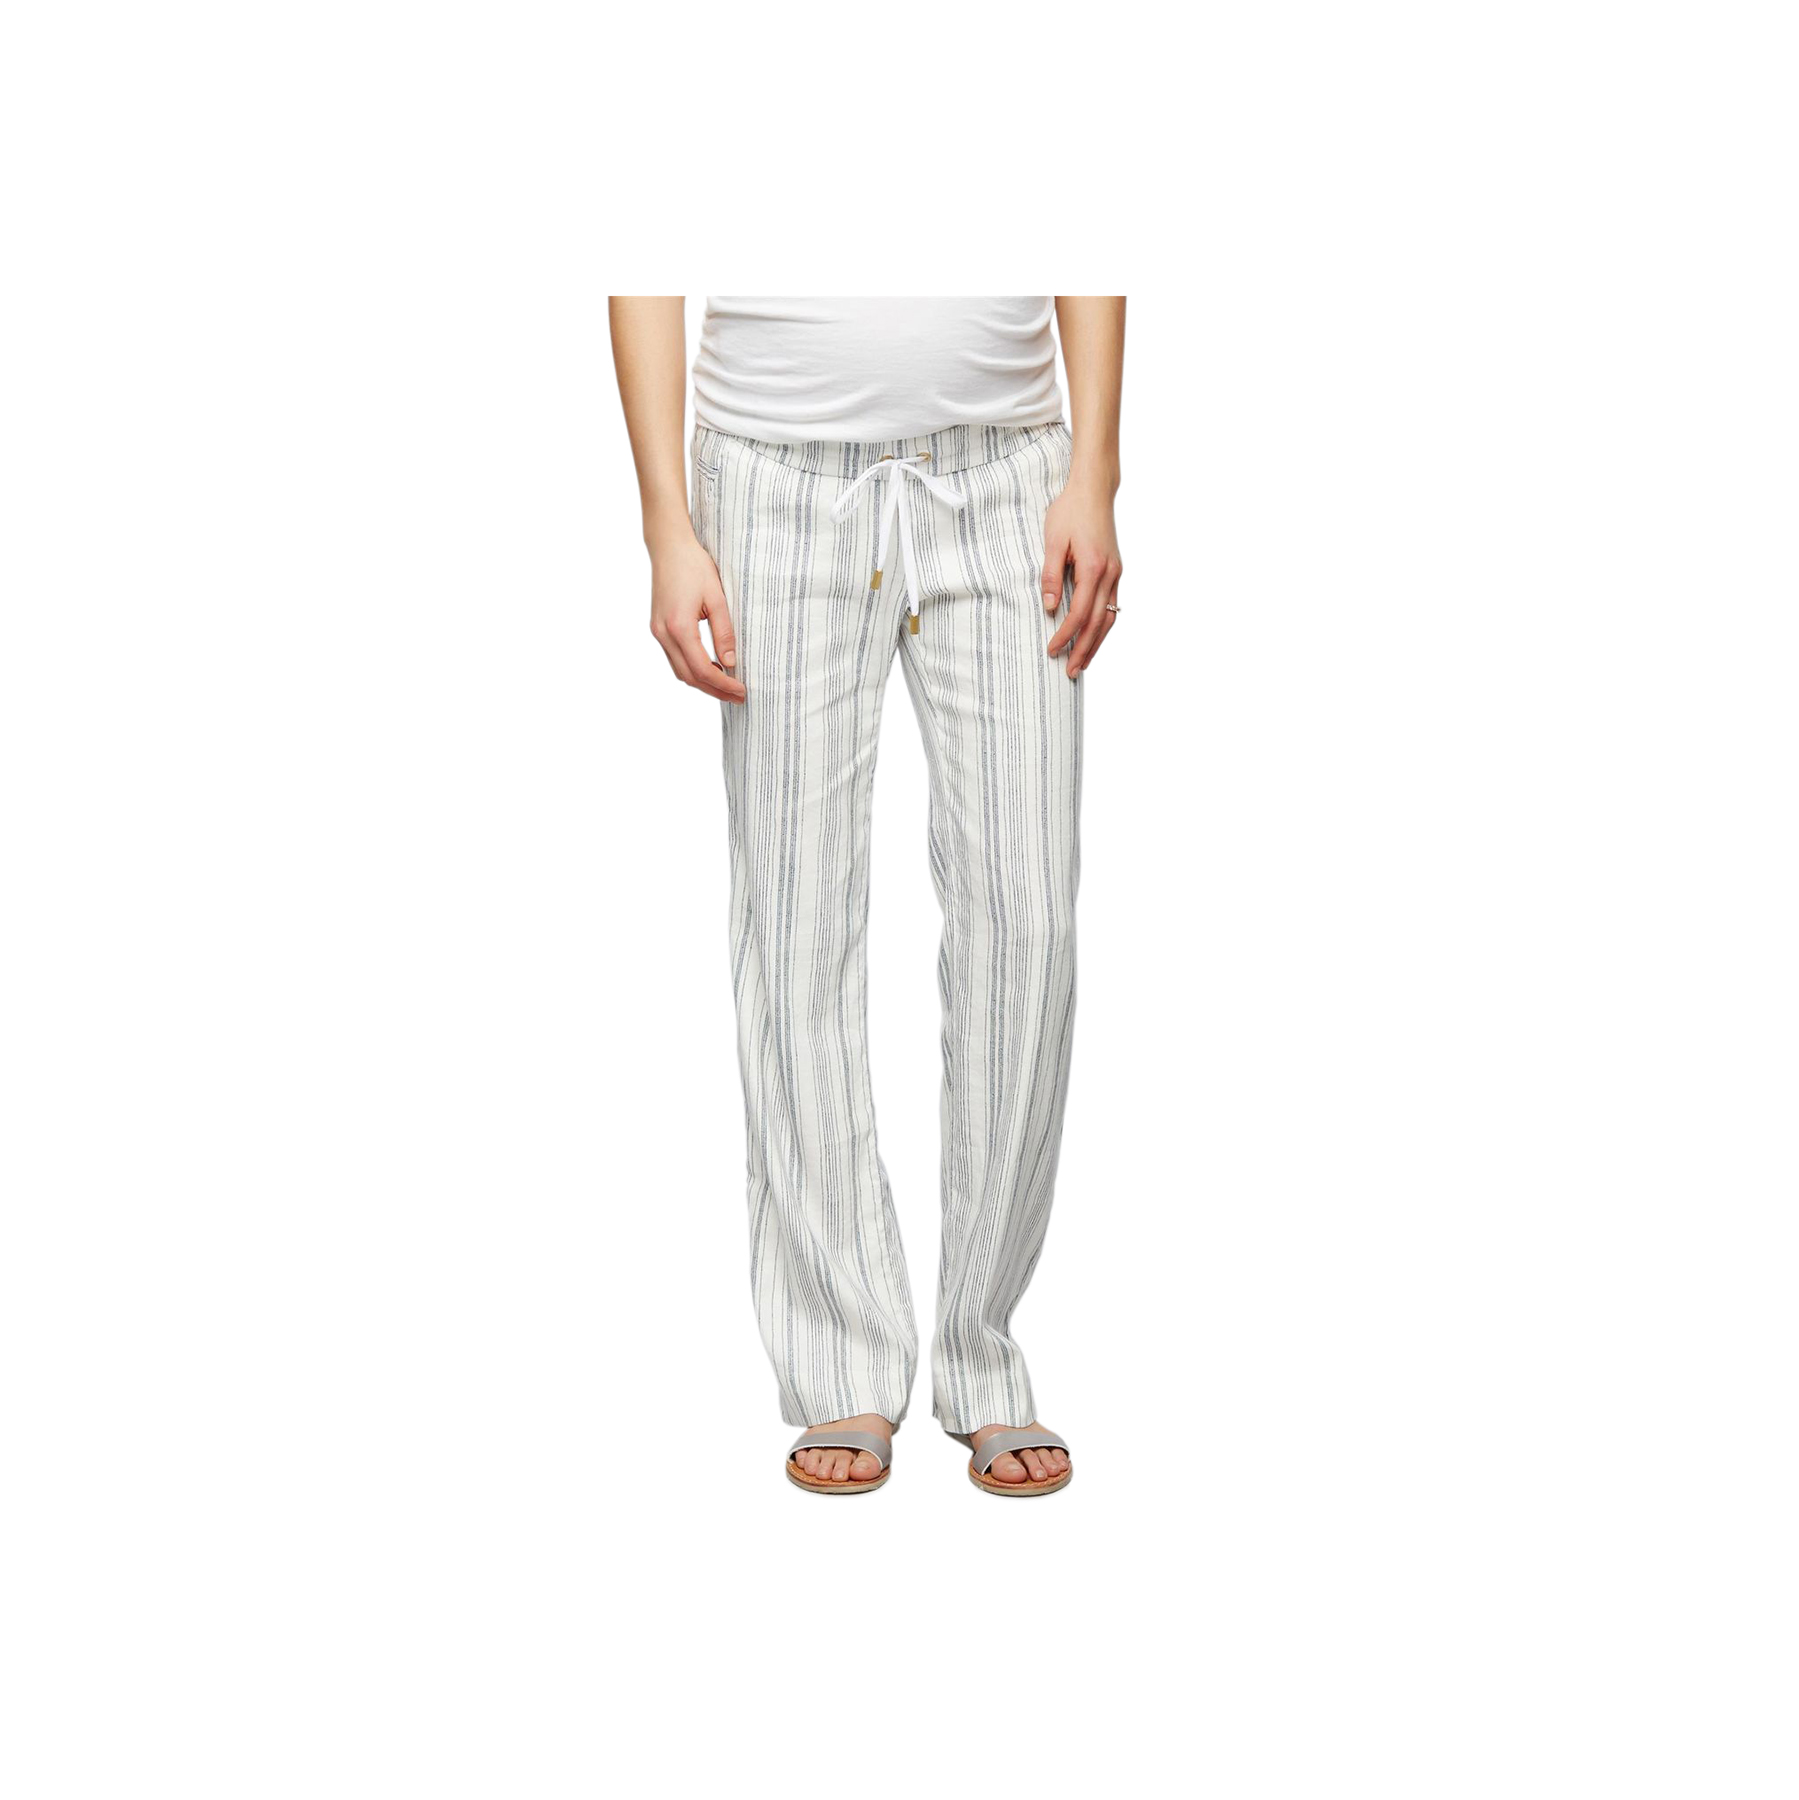 Under Belly Linen Wide Leg Maternity Pants